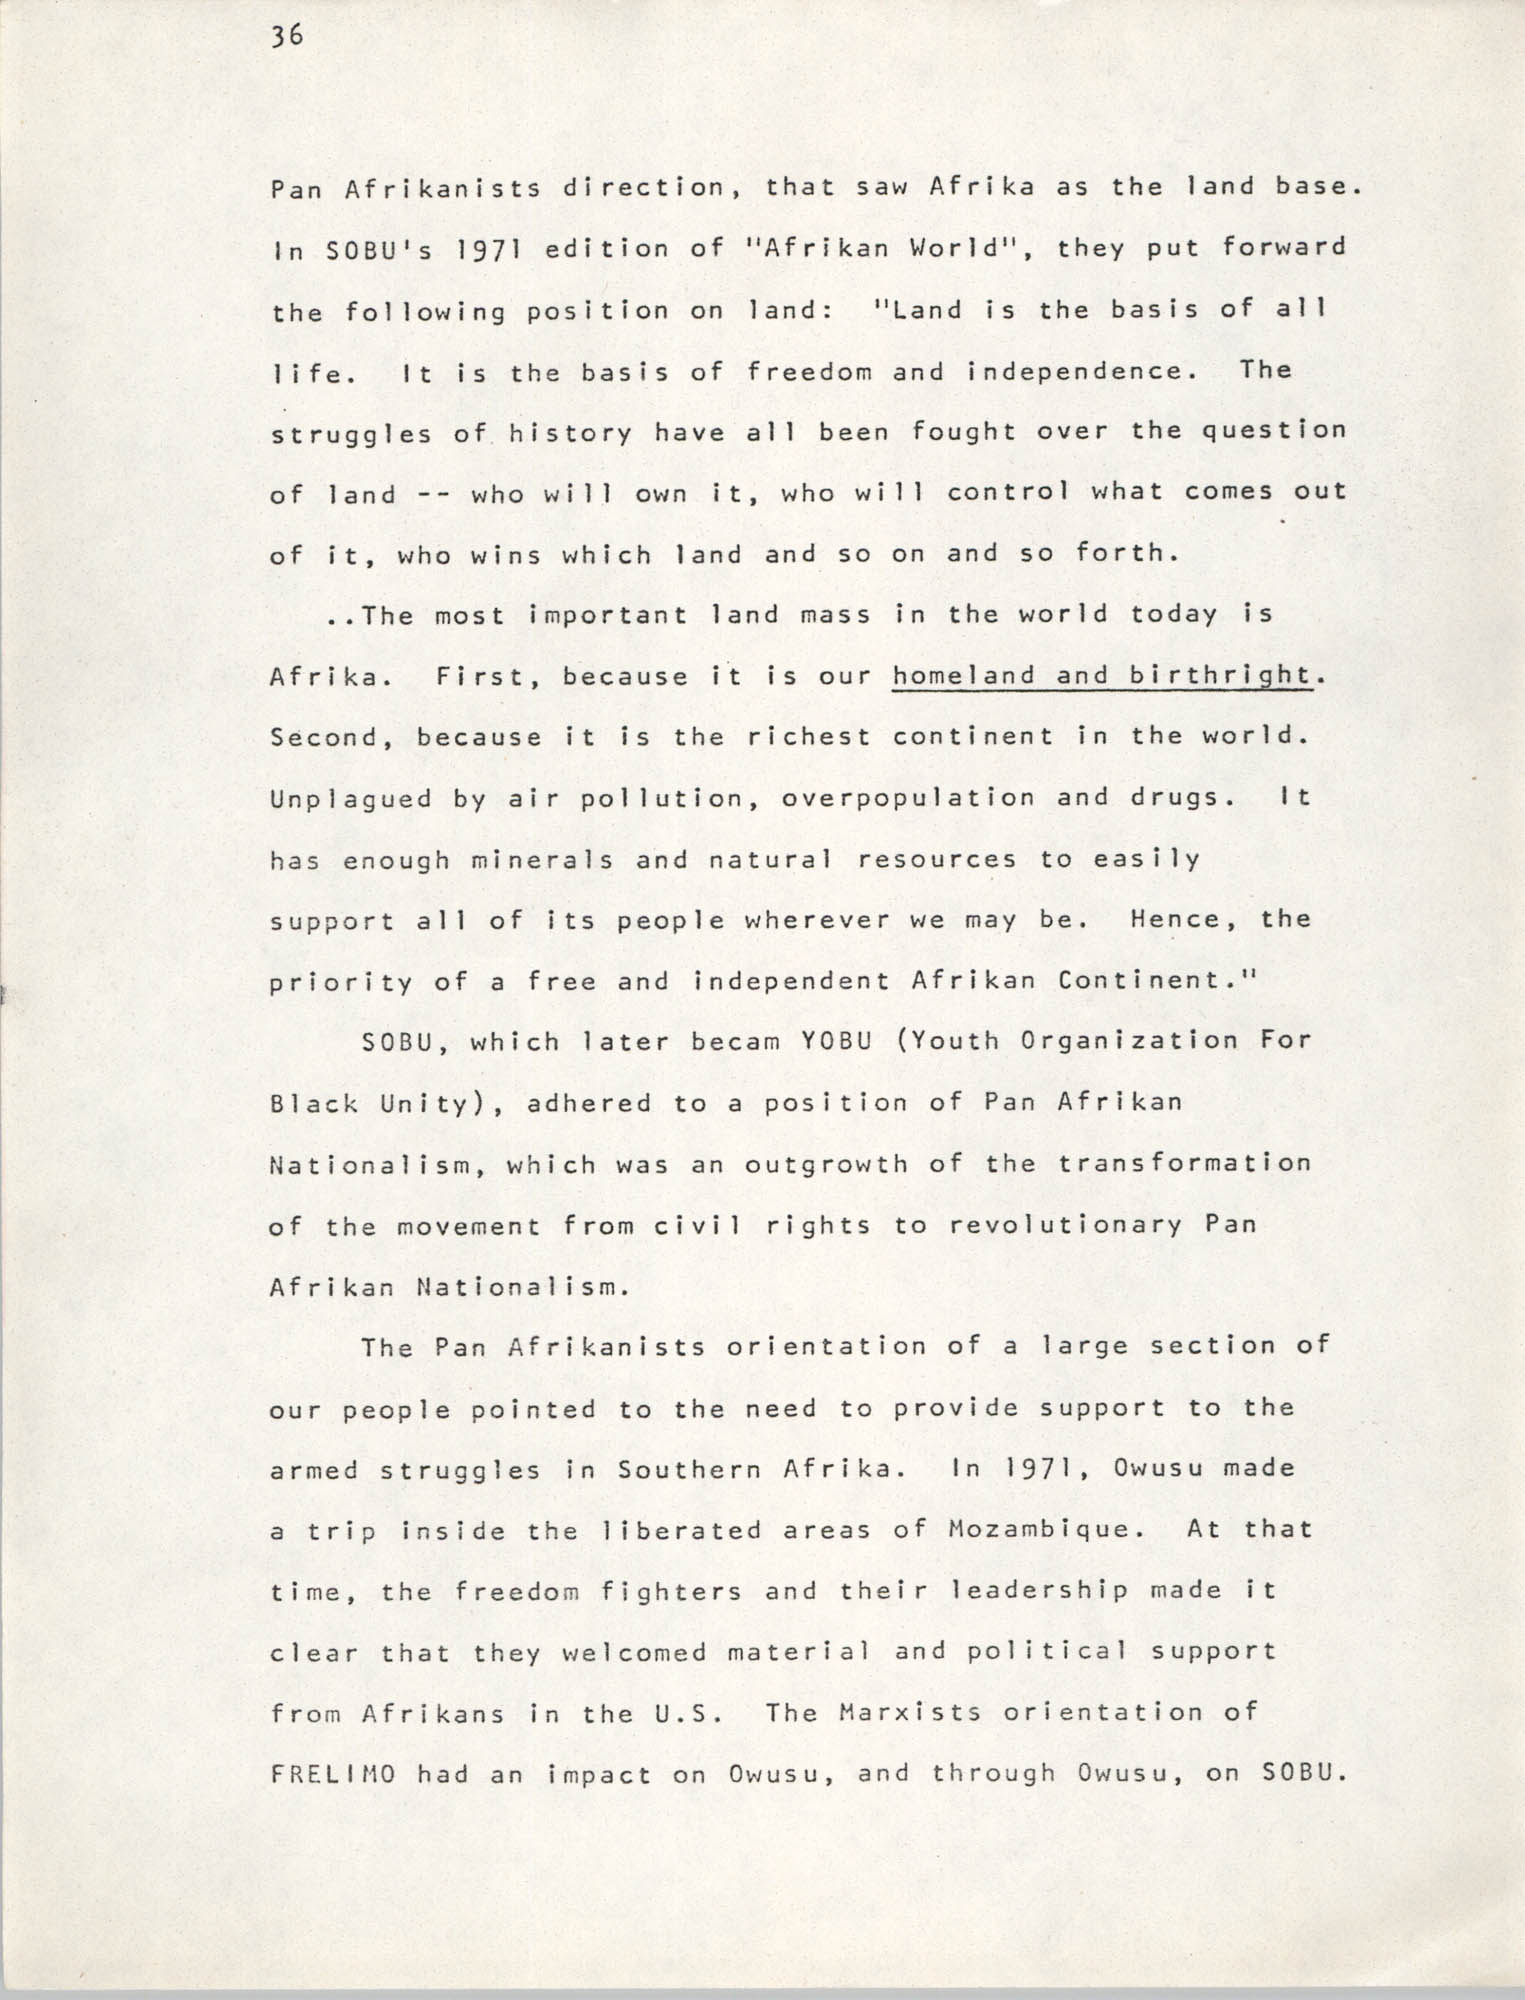 Pan-African Committee of the Black United Front, Page 36